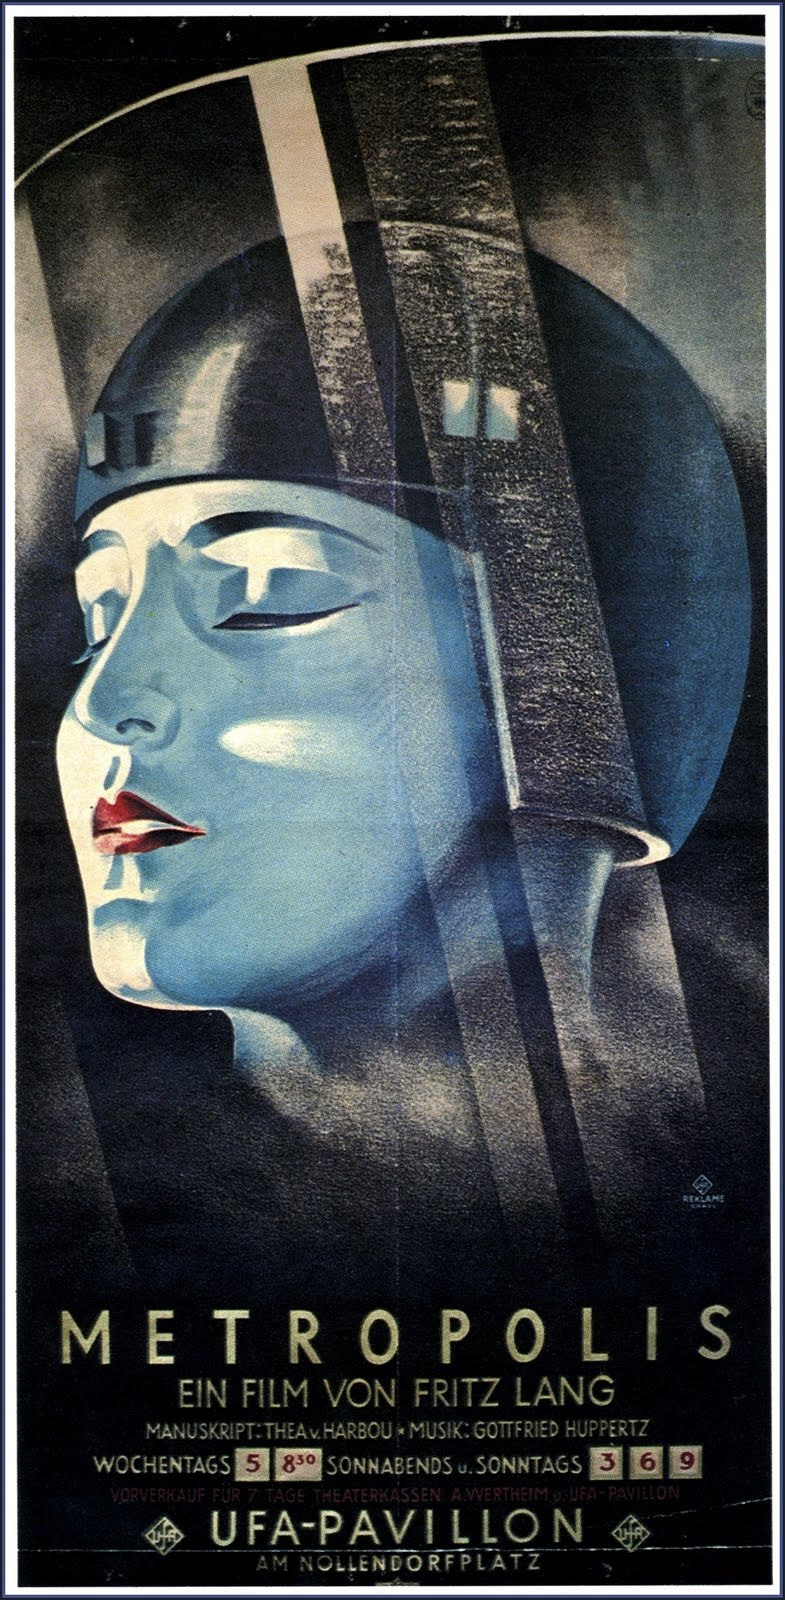 an analysis of the science fiction movie metropolis The sexiest robot in the history of motion pictures: an analysis of 'metropolis' metropolis is a 1929 fantasy/science fiction film that describes a future society where social status is organized .